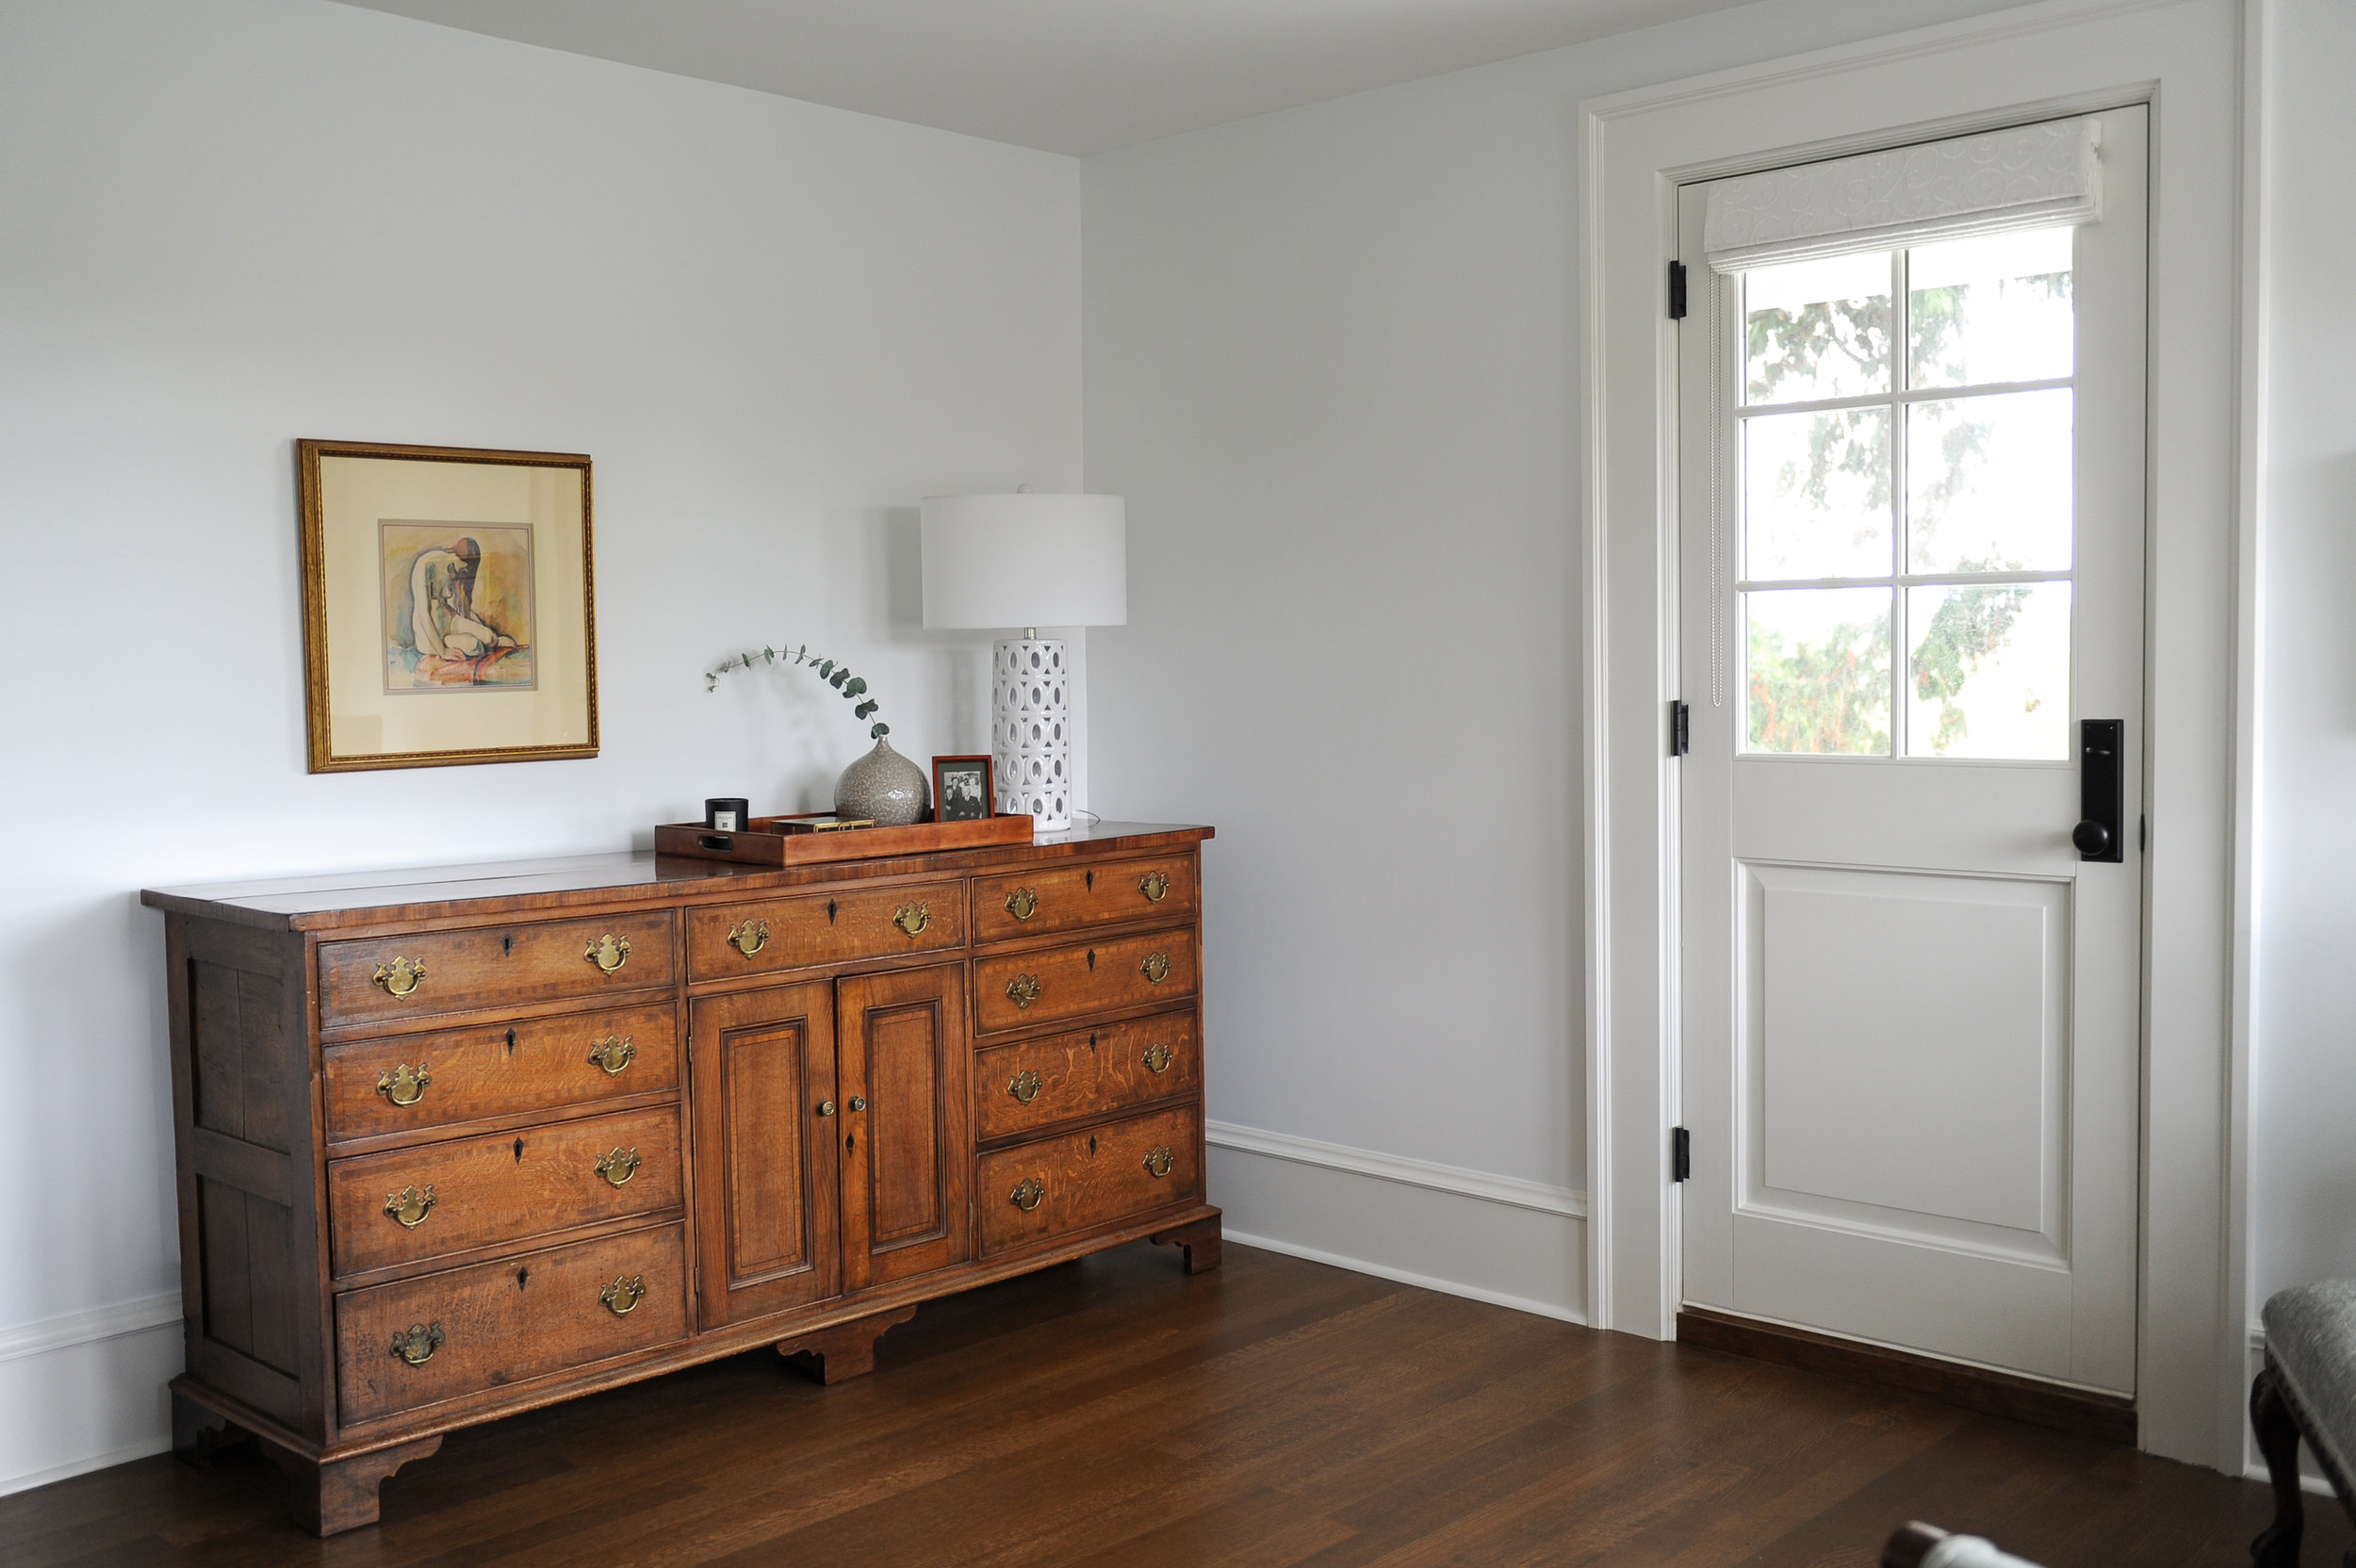 An antique wooden dresser sits in the corner of a bedroom. A white lamp and a wooden tray with various decor sit on top of it. A framed painting hangs above it. Near it, there is a white door that leads to the outside.